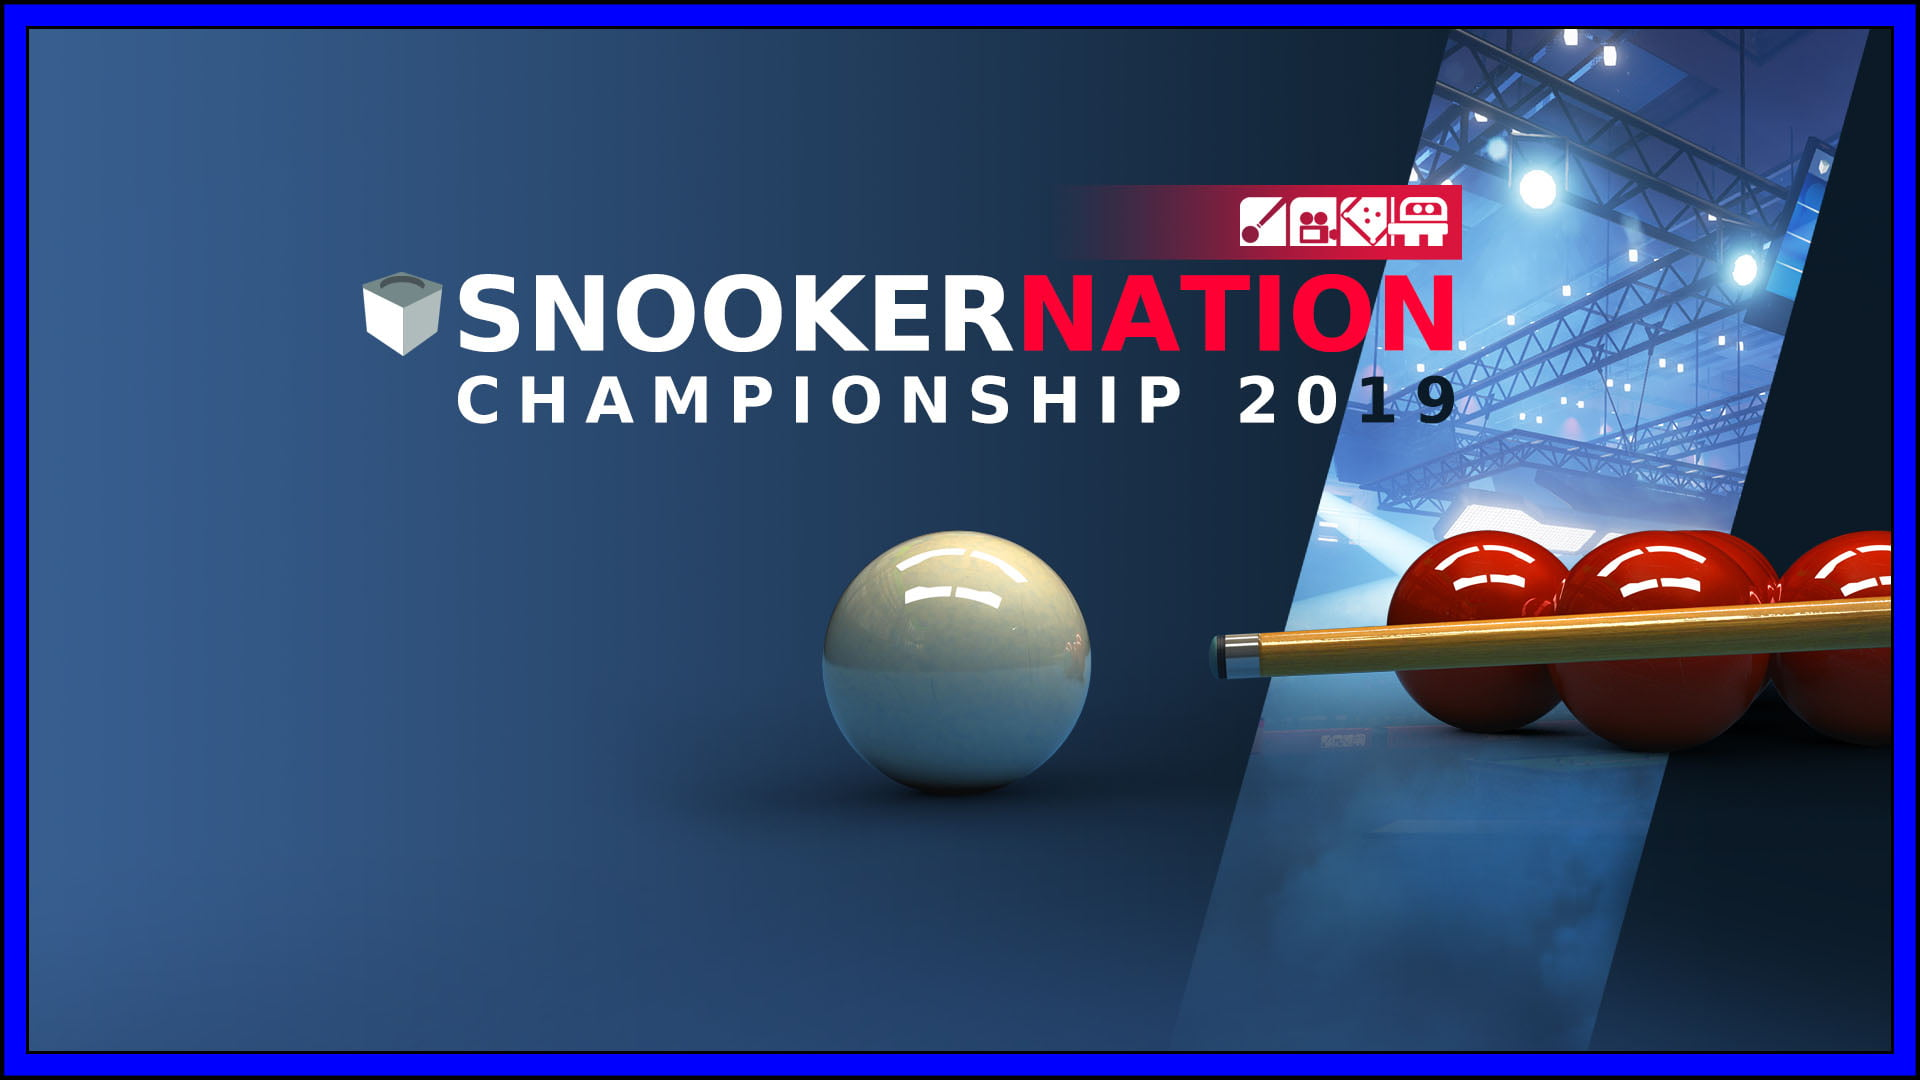 Snooker Nation Championship 2019 Fi3